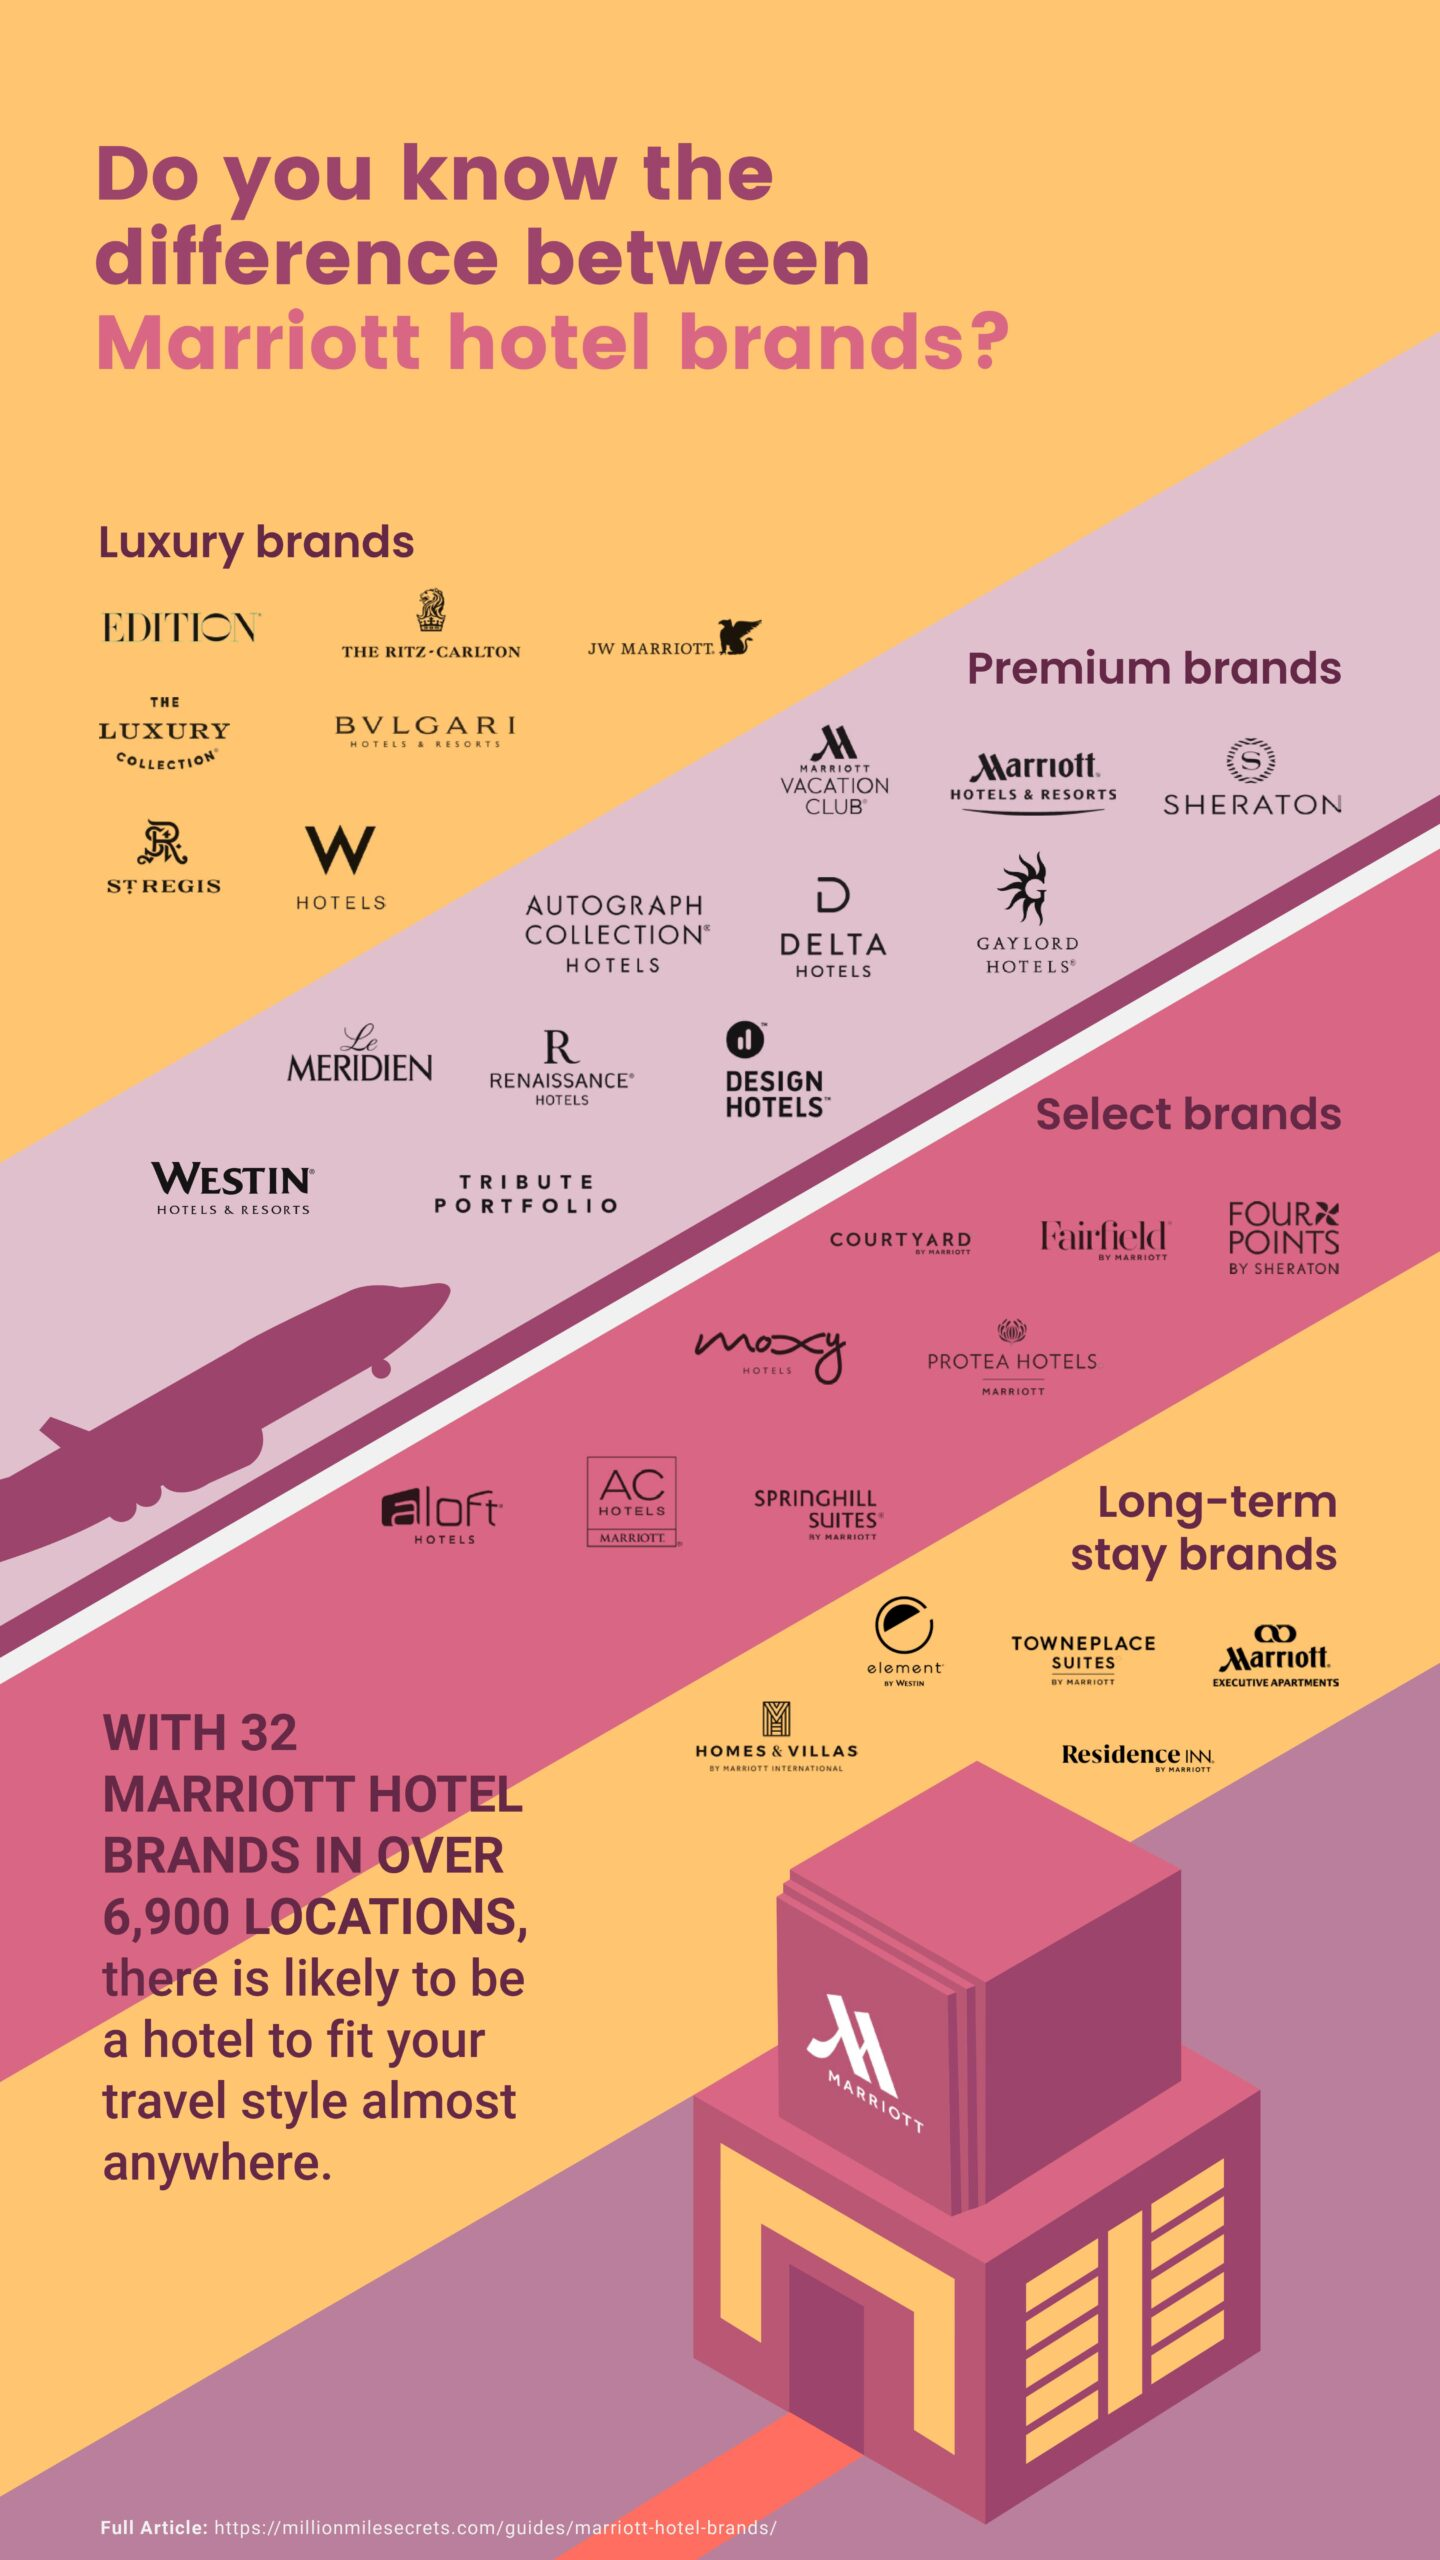 difference between Marriott hotel brands